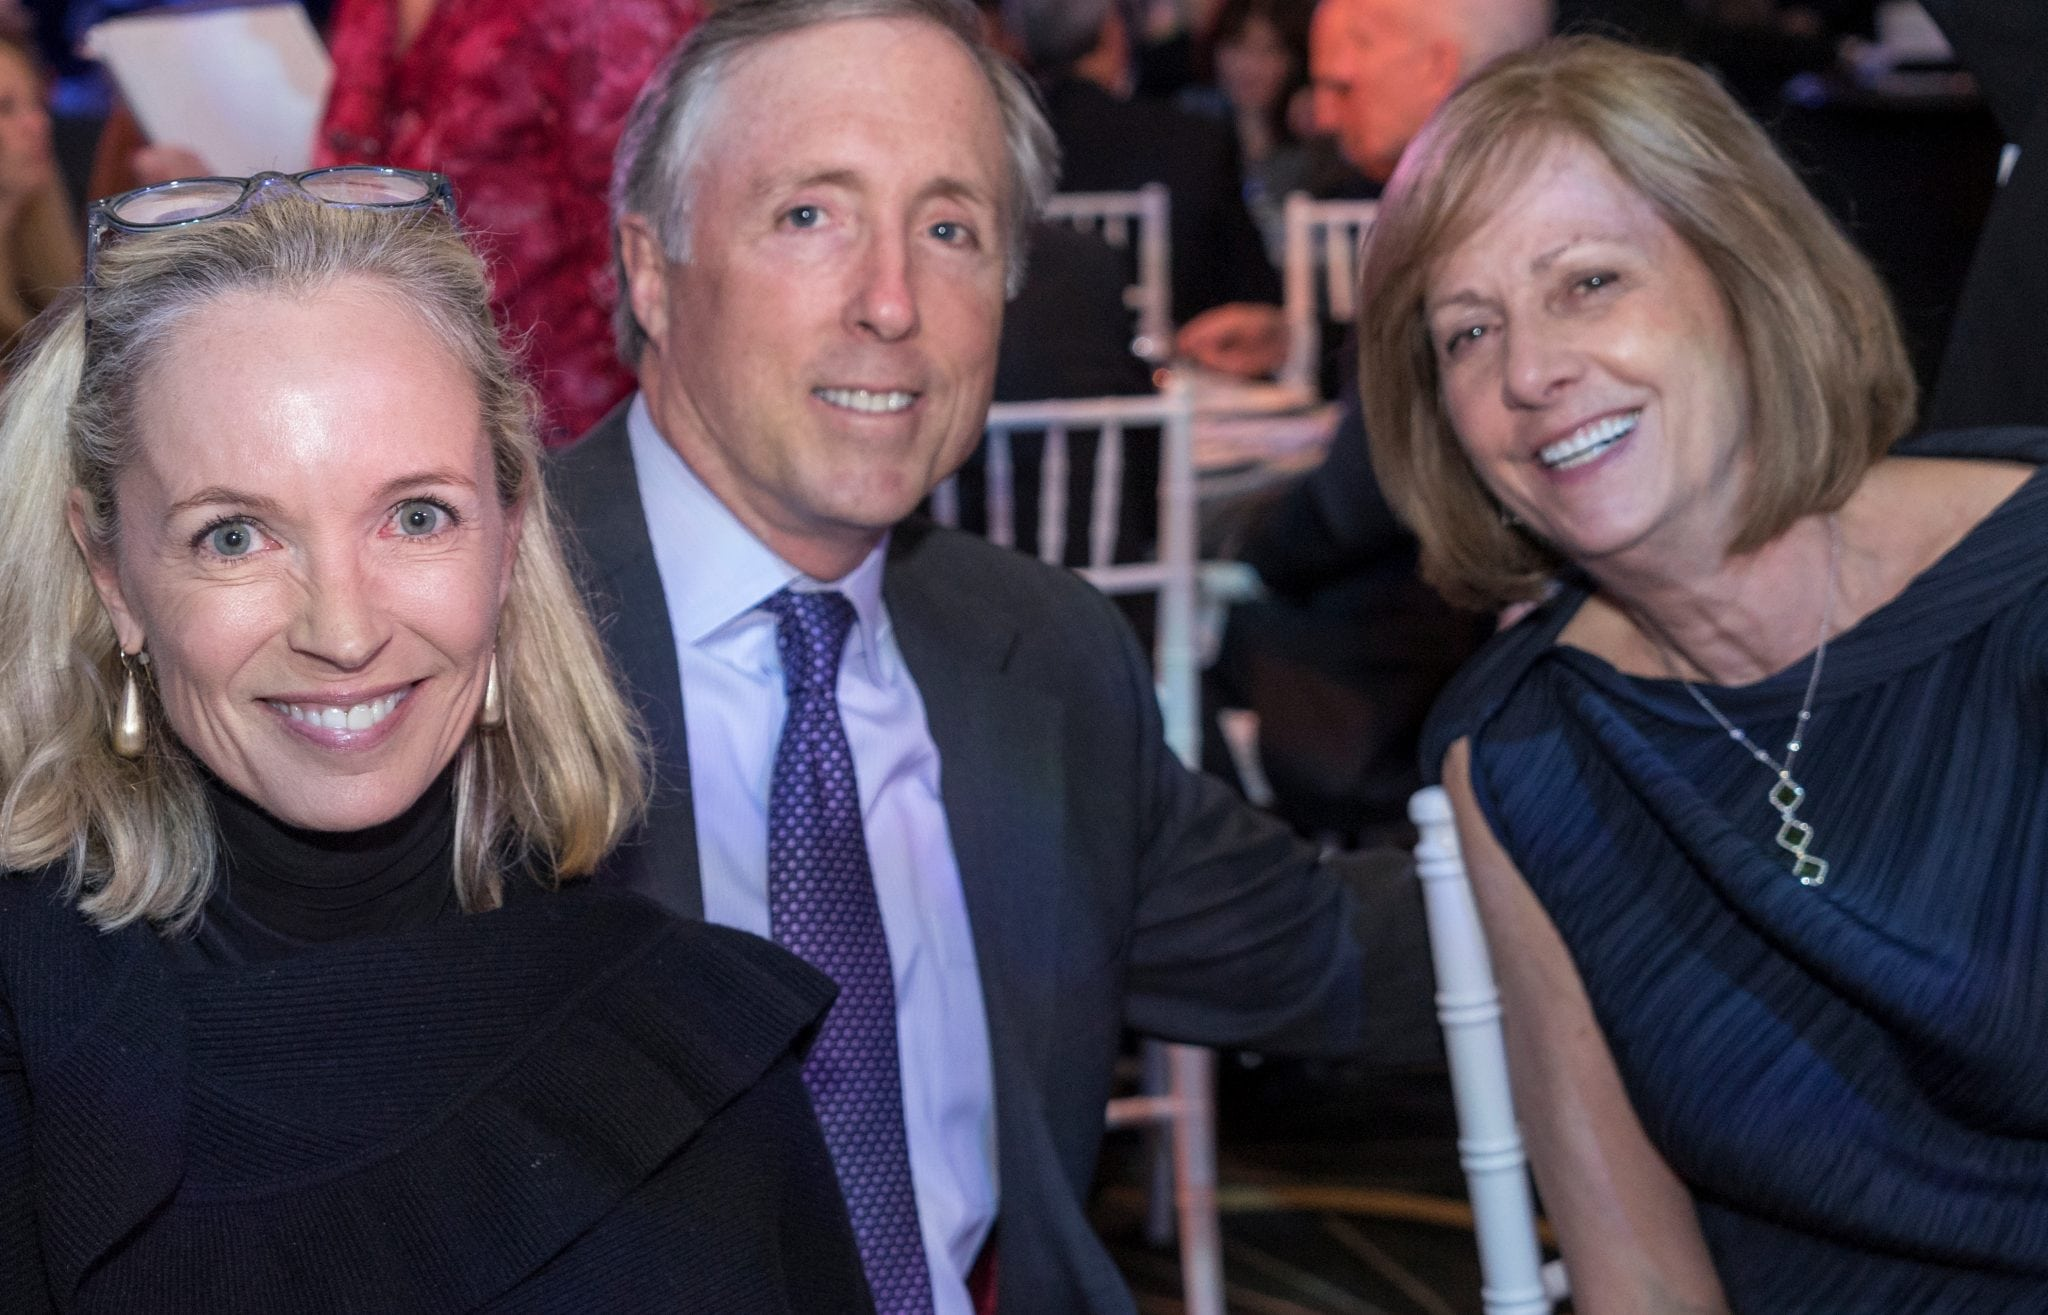 Newton-Wellesley Hospital gala scores $875K-plus for charity - The  Swellesley Report